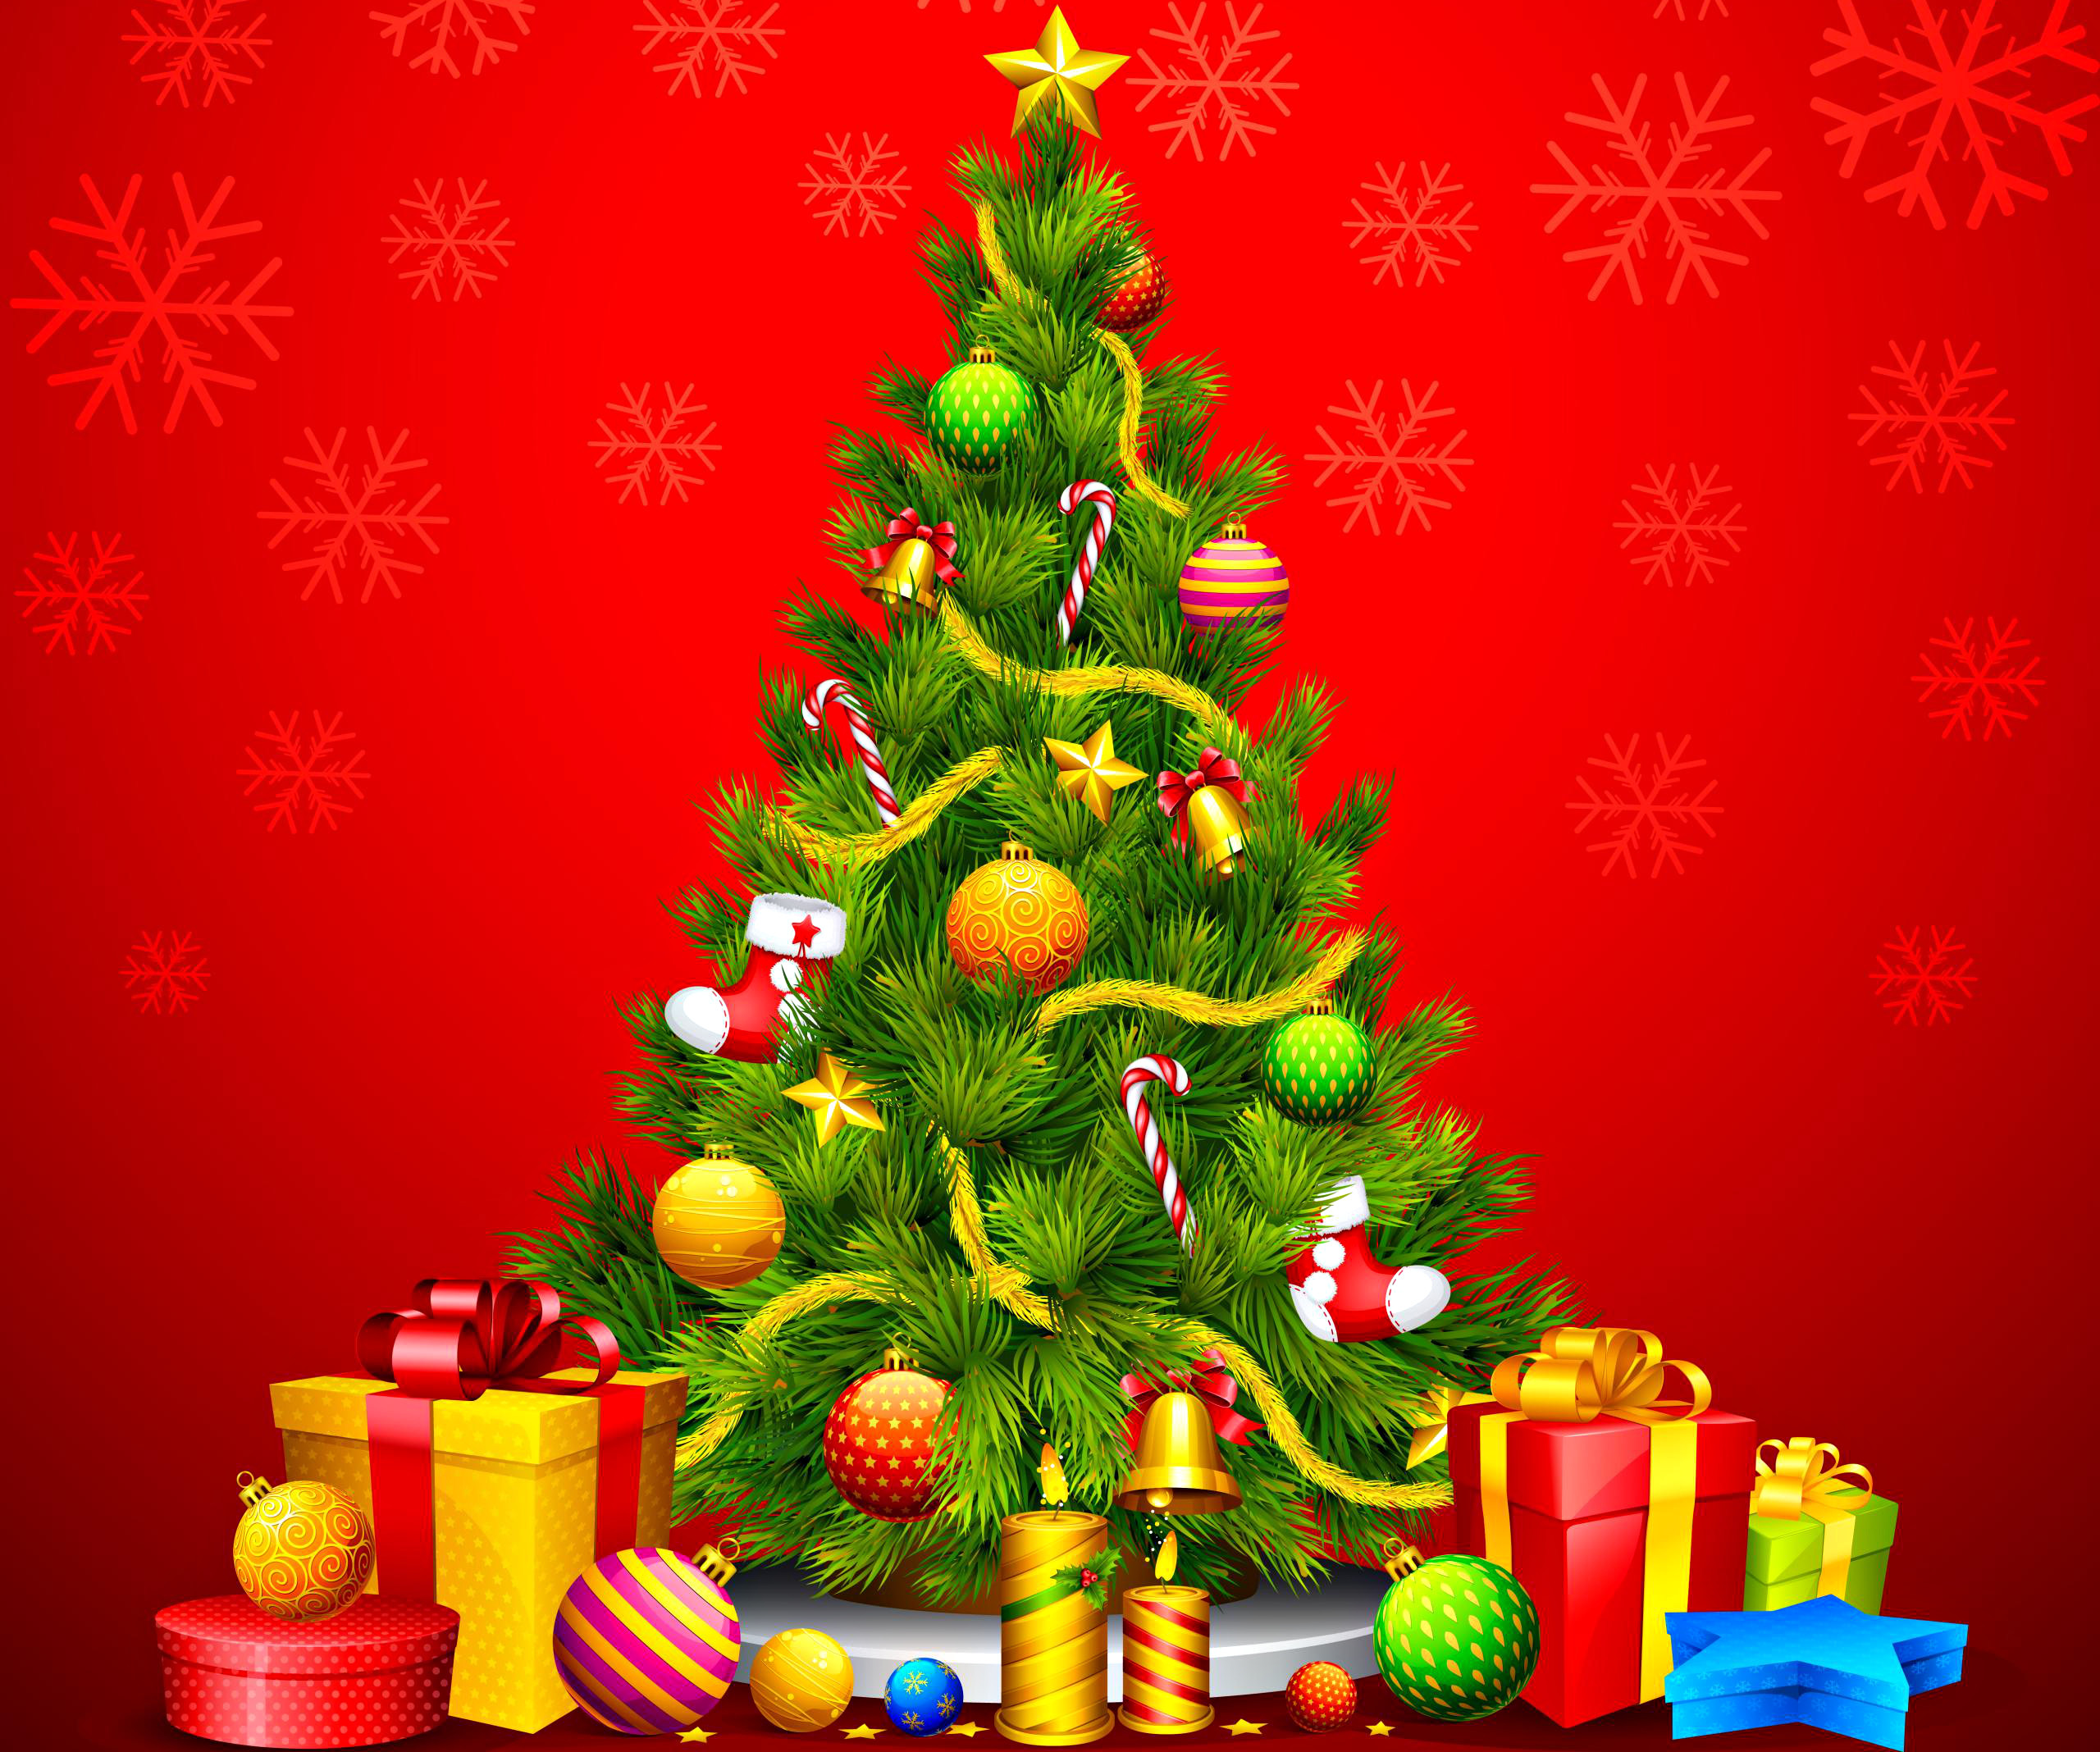 1920x1200 1920x1200 2015 Christmas wallpapers backgrounds desktop · Download · Animated .